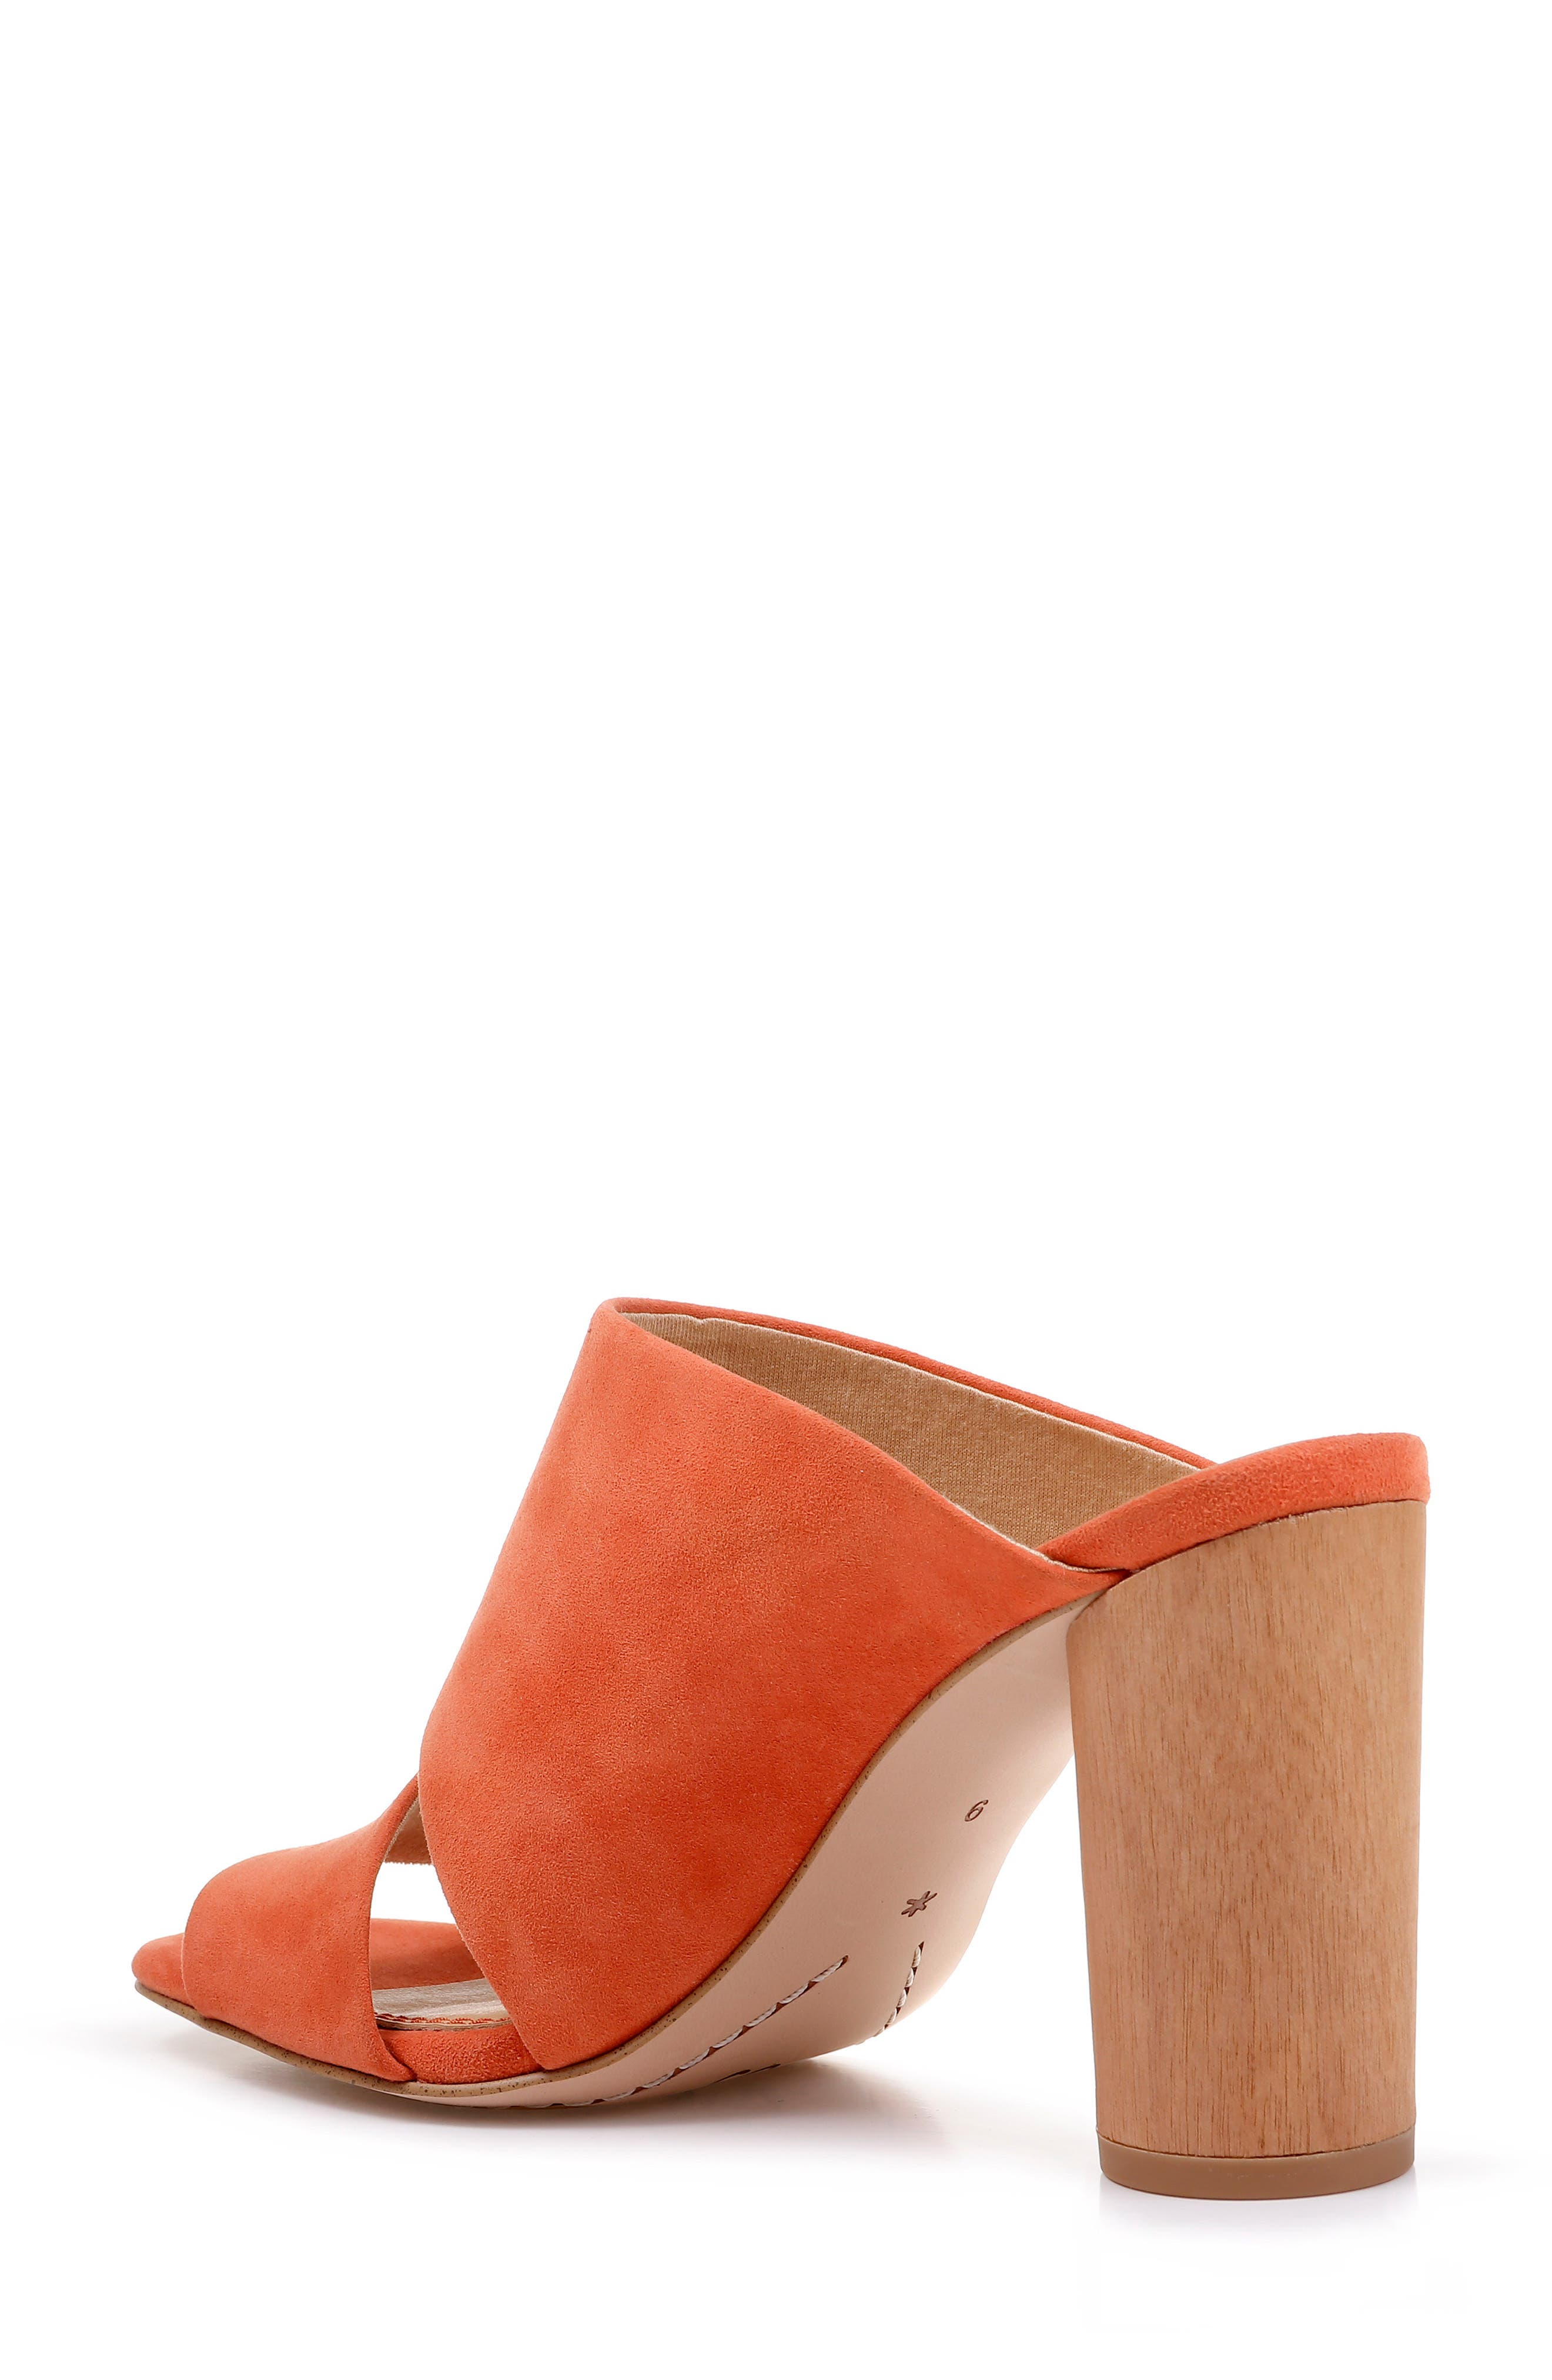 Serenade Sandal,                             Alternate thumbnail 2, color,                             ORANGE SUEDE